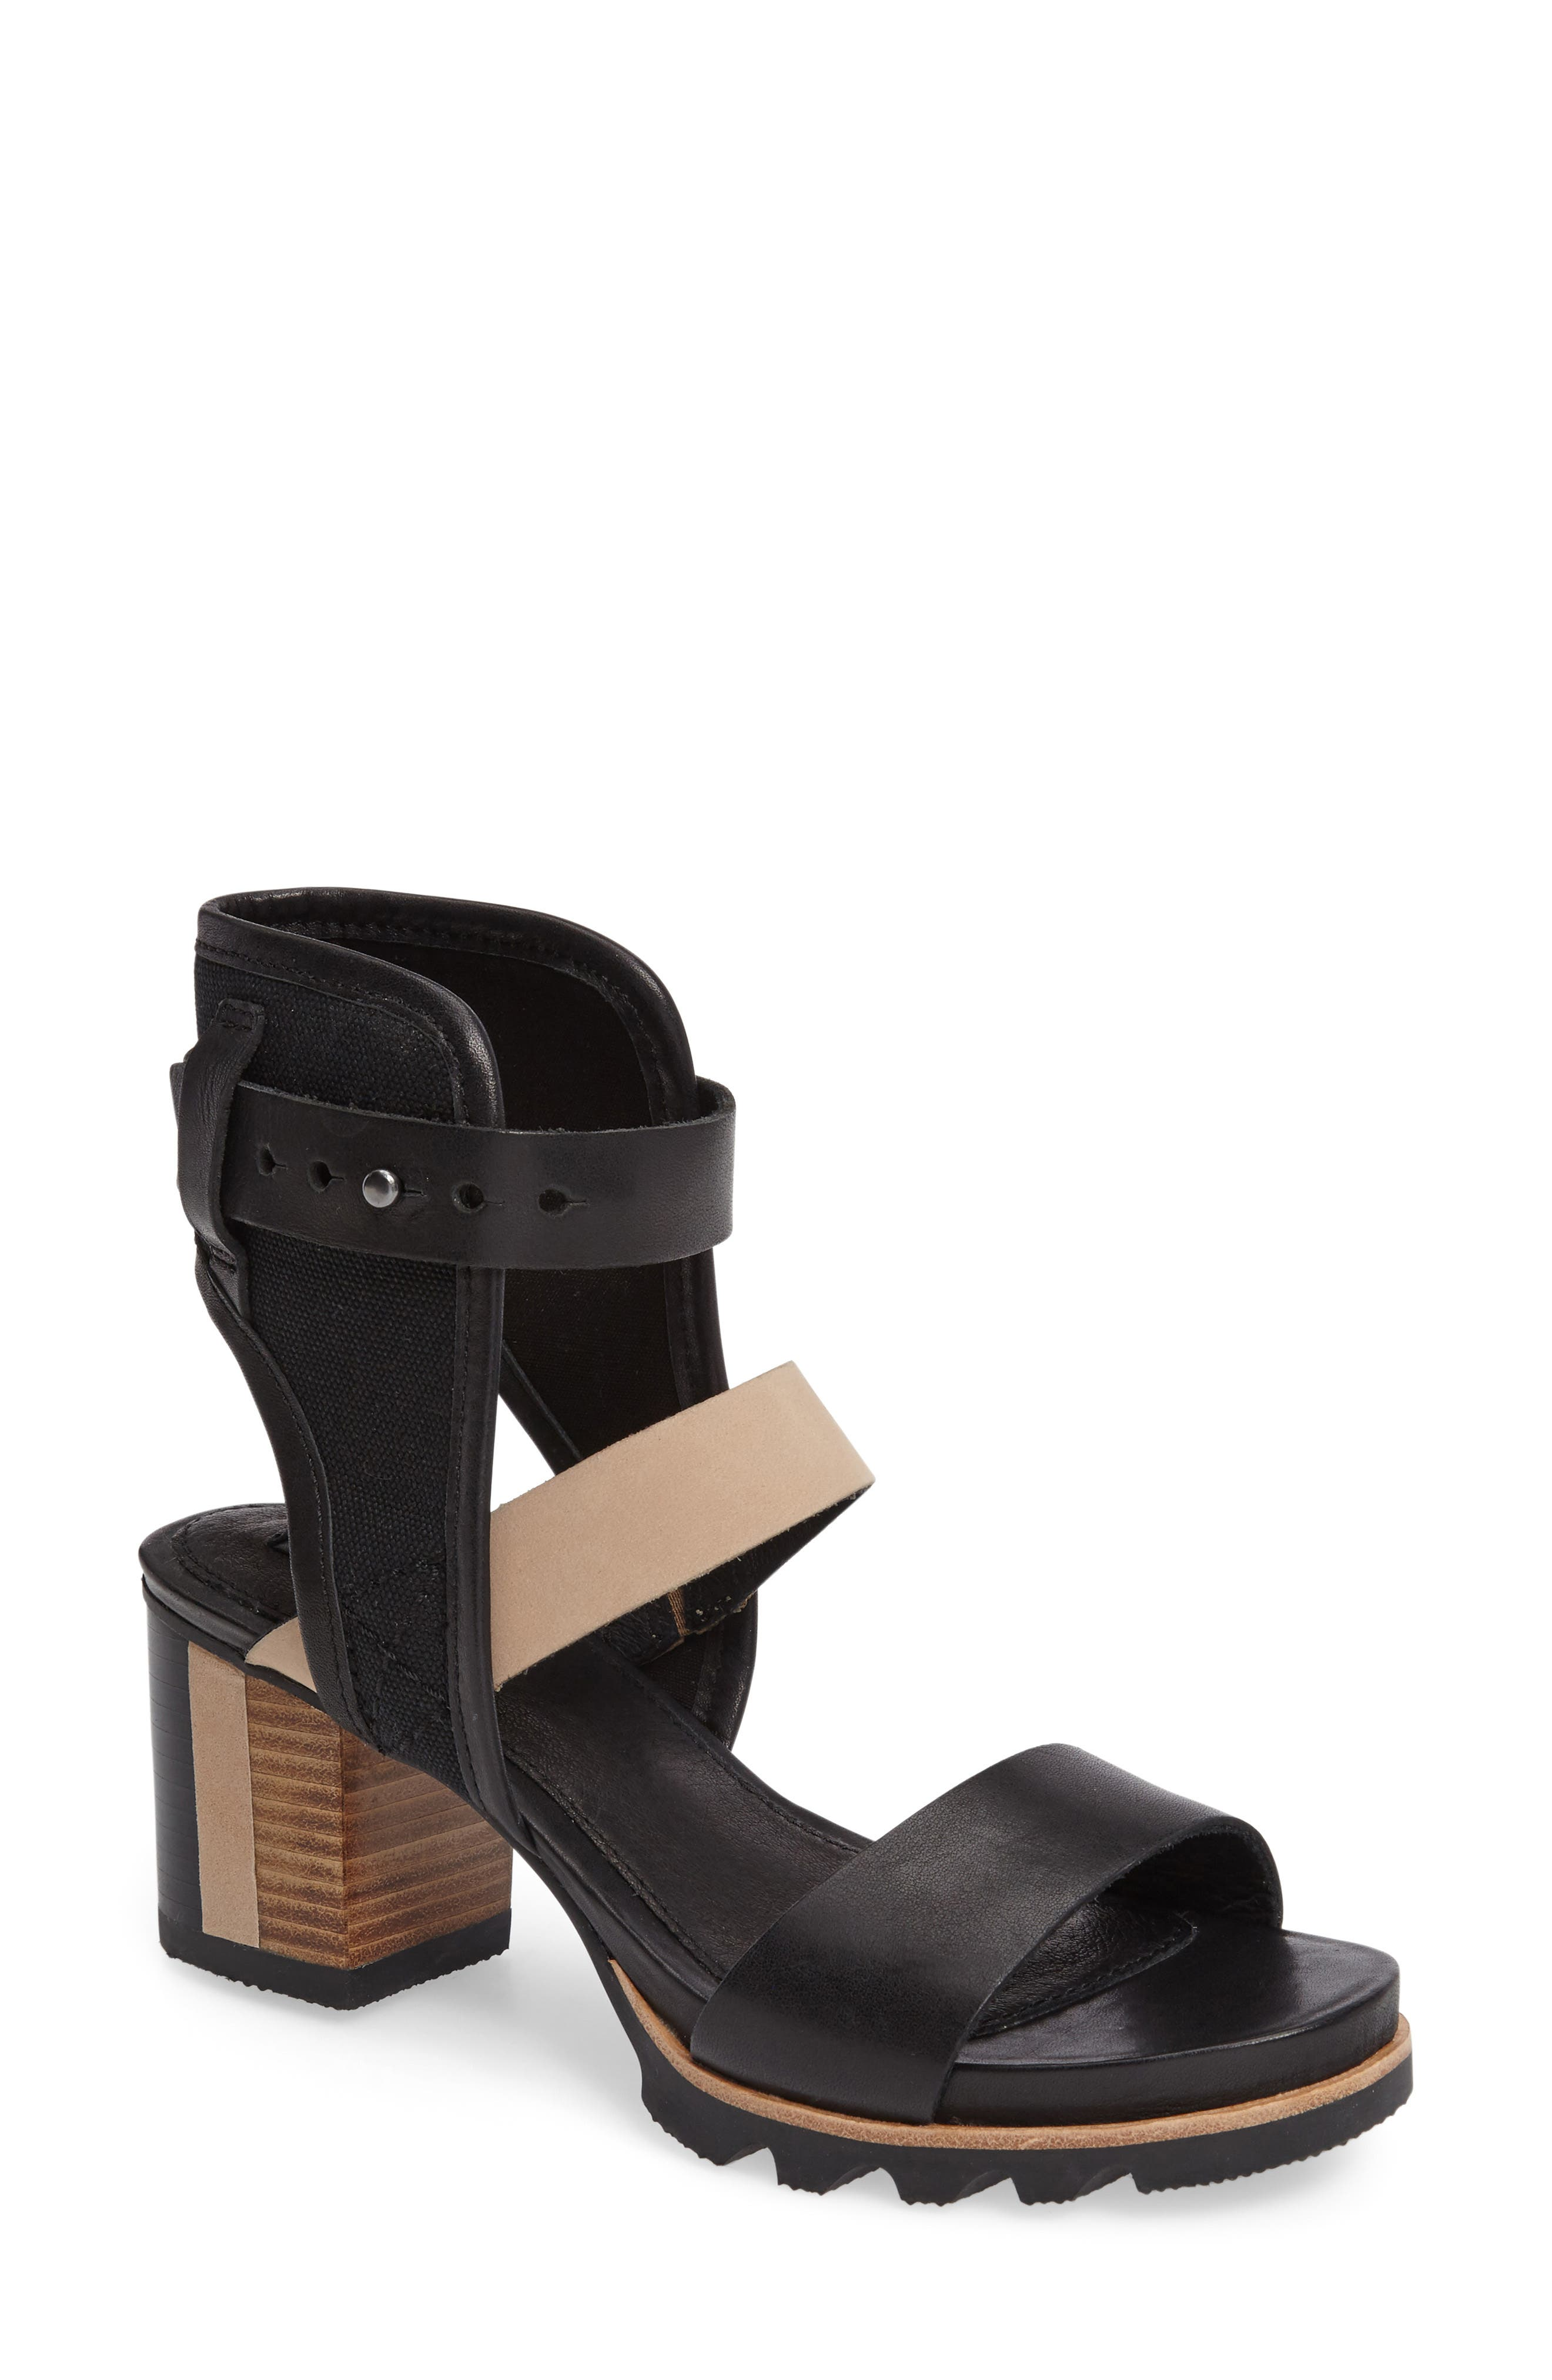 Main Image - SOREL Addington Ankle Cuff Sandal (Women)